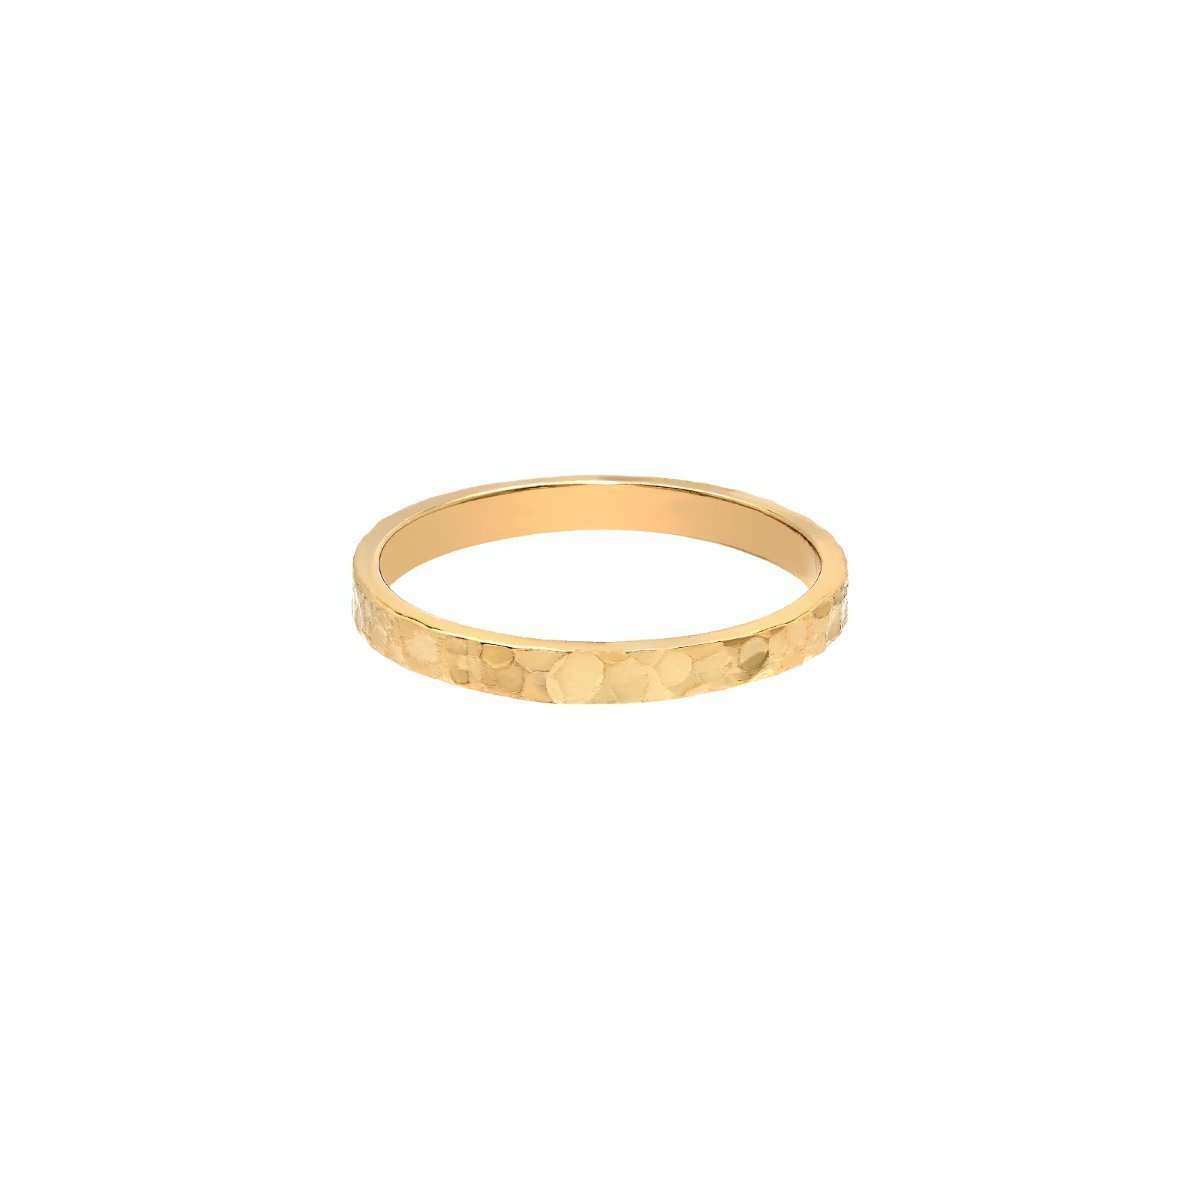 Tousi Jewelers Hammered Ring- Solid 14k or 18k Yellow Gold Wedding Bands Jewelry for Women- Free Personalized and Engraved Name and Initial or Message